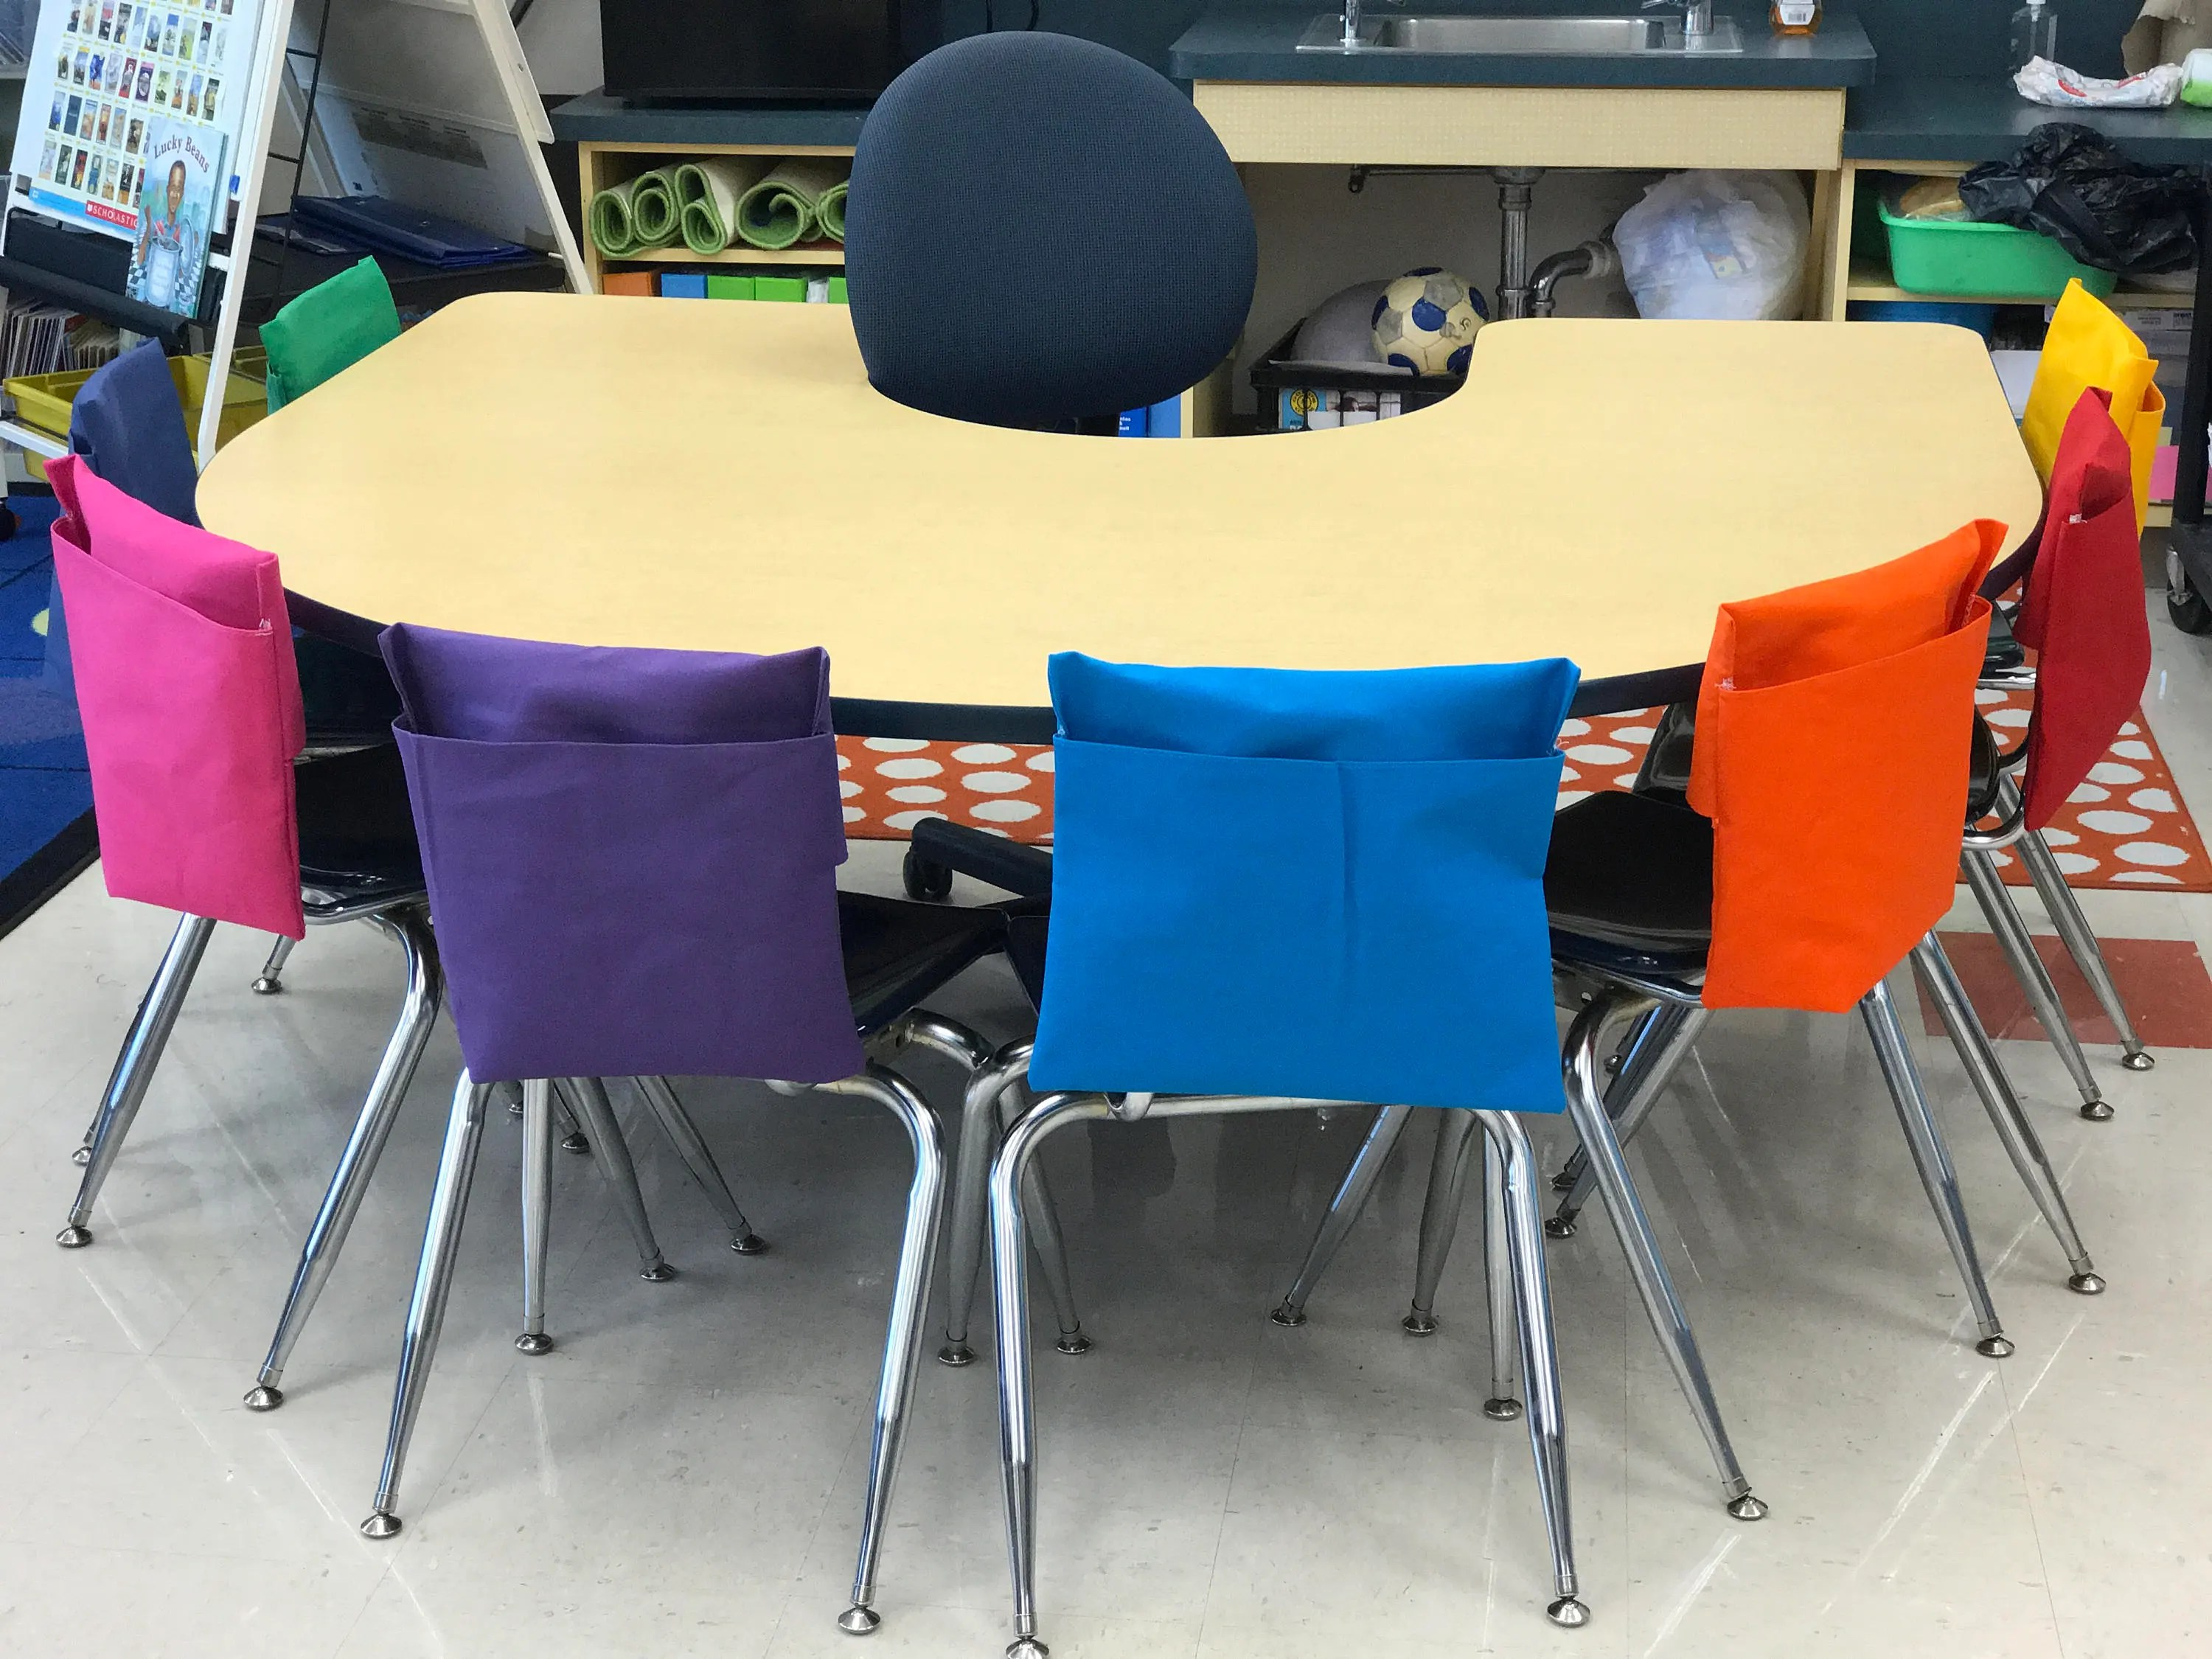 Chair Pockets For Classrooms 25 Classroom Chair Pockets Seat Sacks Desk Organizer Chair Bag